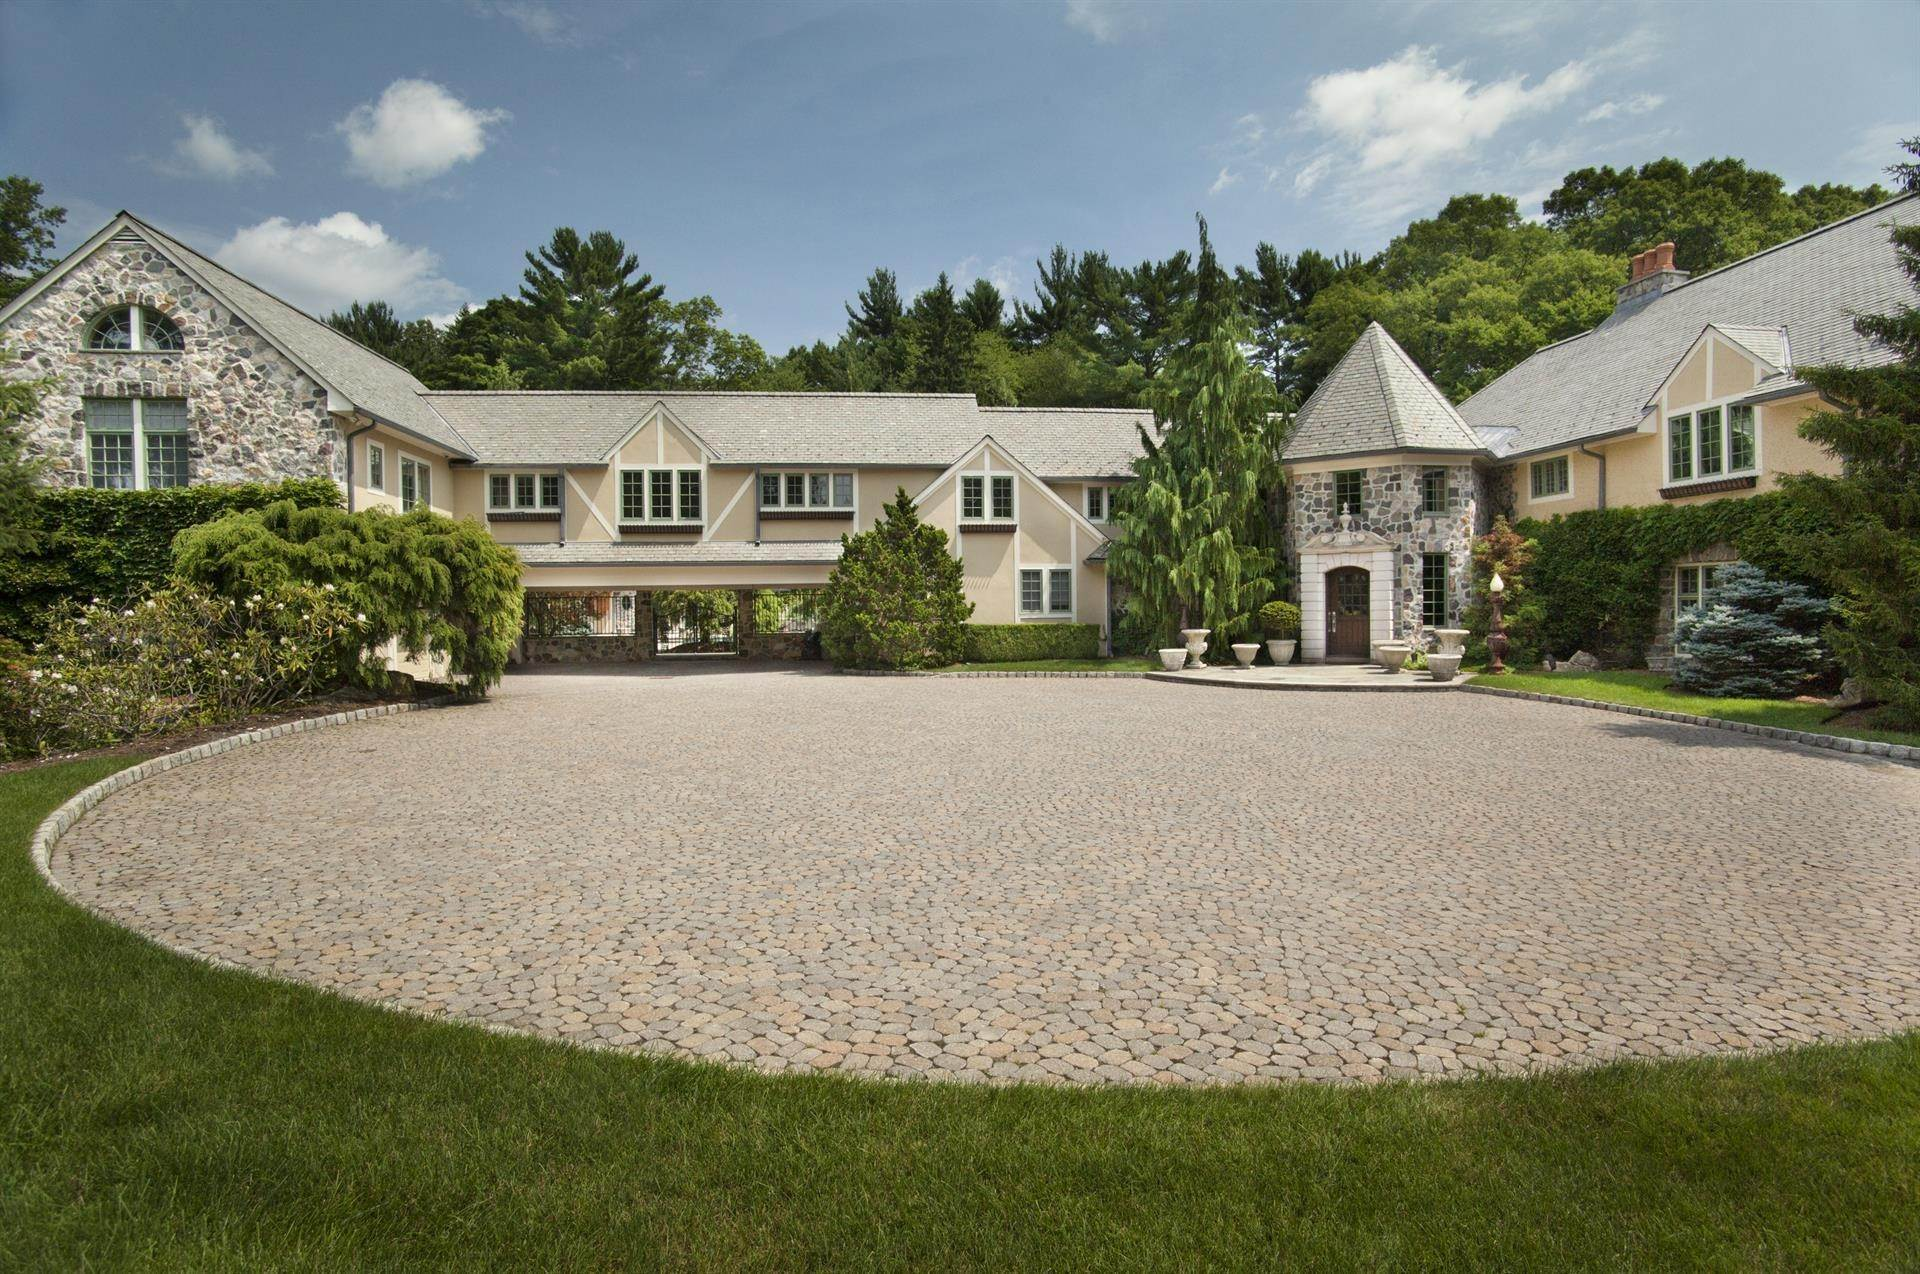 2. Single Family Home vì Bán tại Celebrity Stunner - 5+ Acre Family Compound Saddle River, New Jersey,07458 Hoa Kỳ